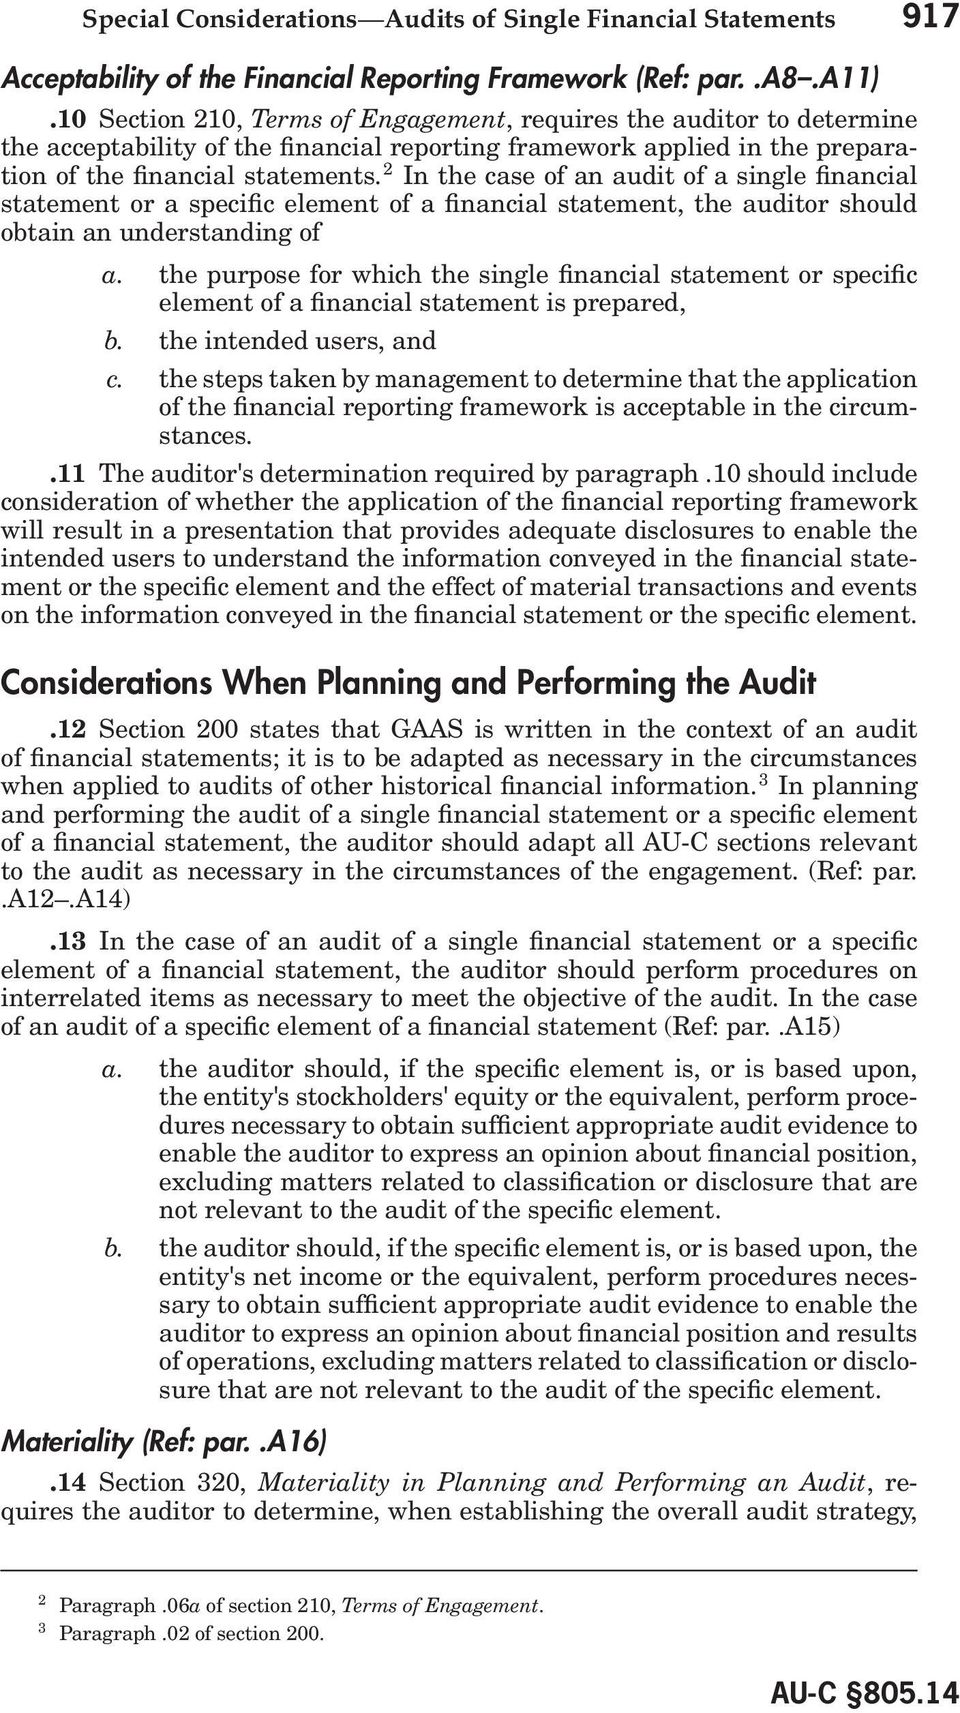 2 In the case of an audit of a single financial statement or a specific element of a financial statement, the auditor should obtain an understanding of a.